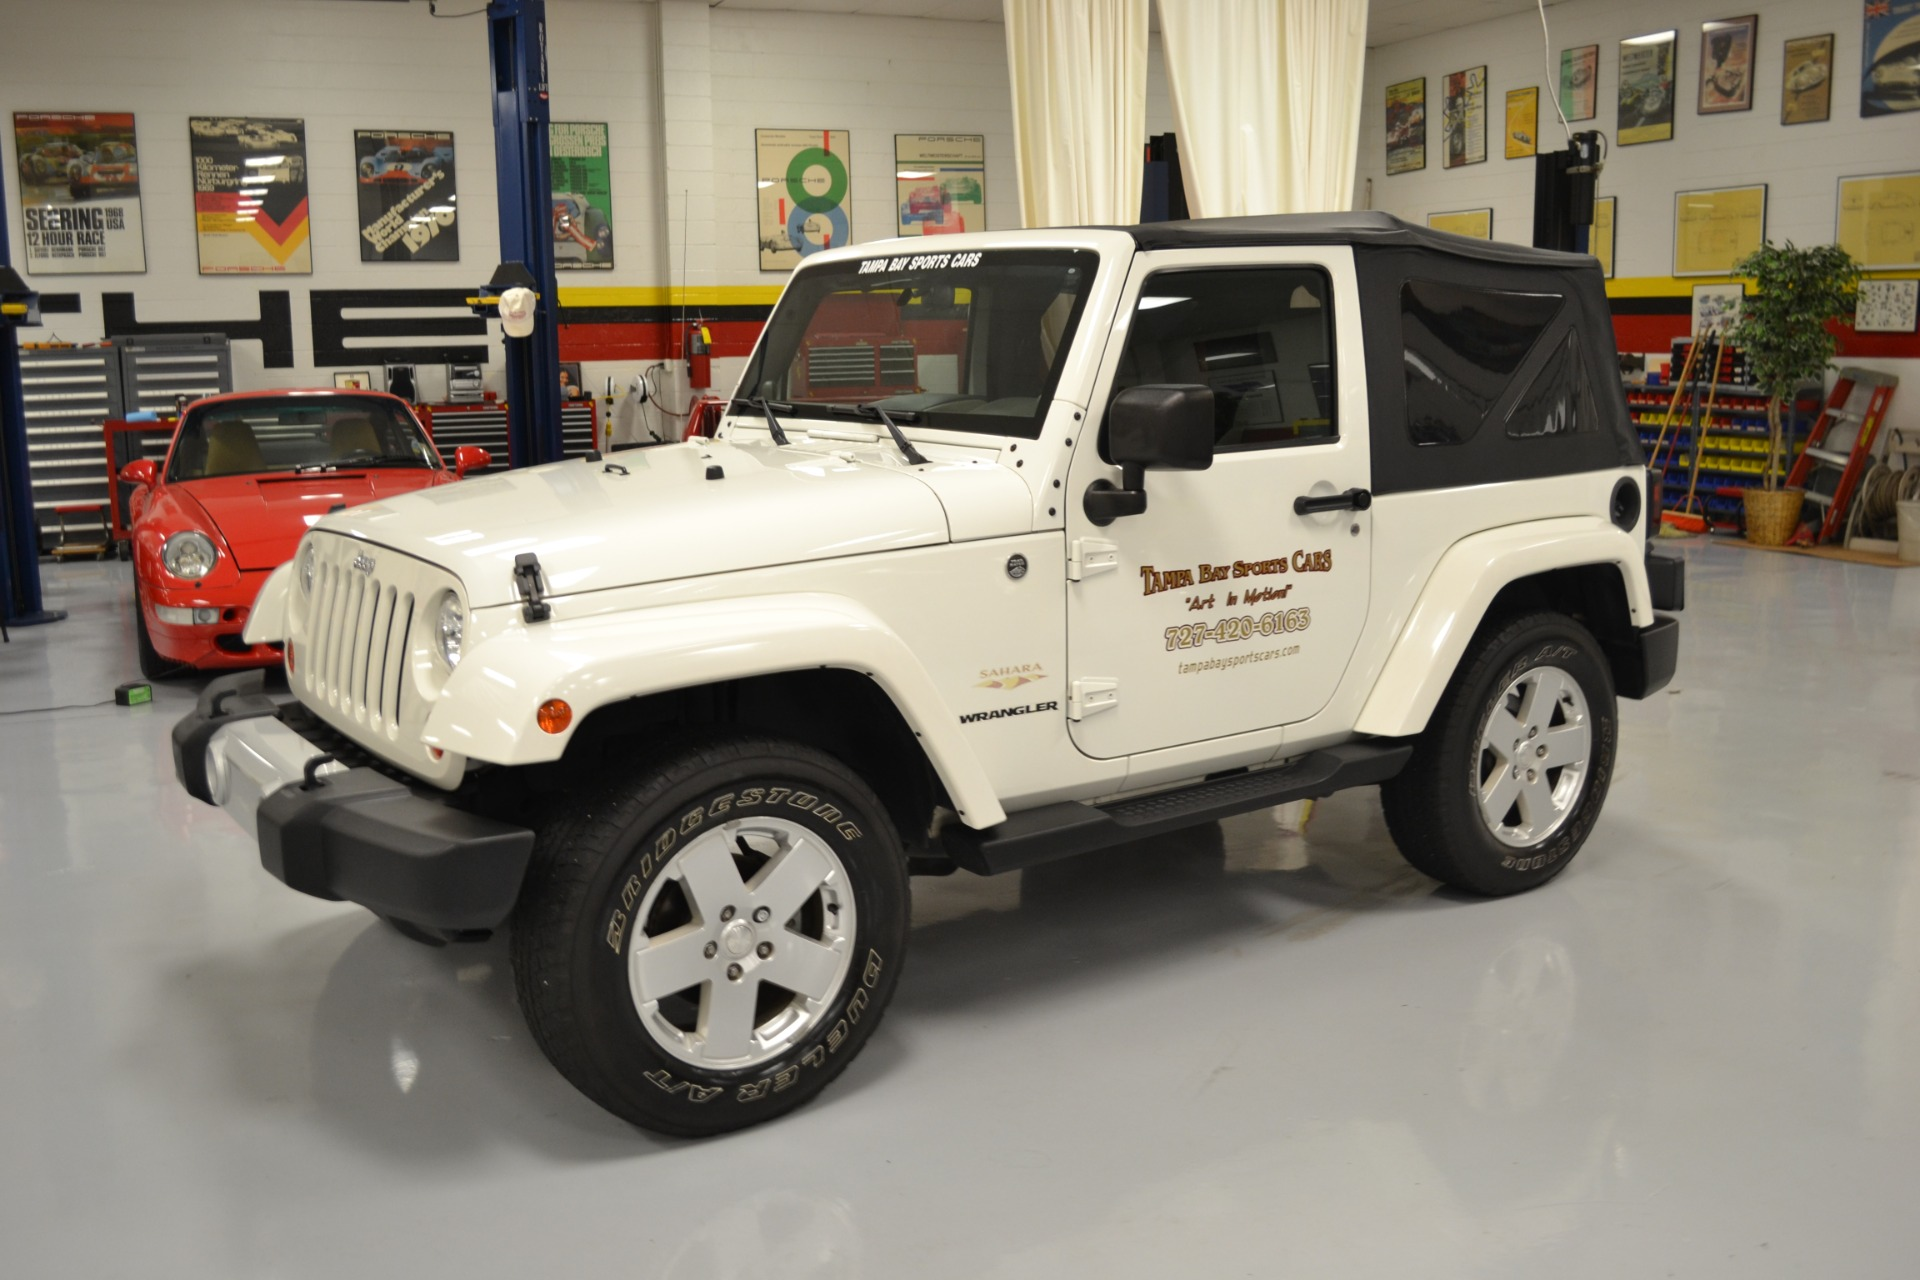 2010 Jeep Wrangler Sahara For Sale in Pinellas Park FL 1061